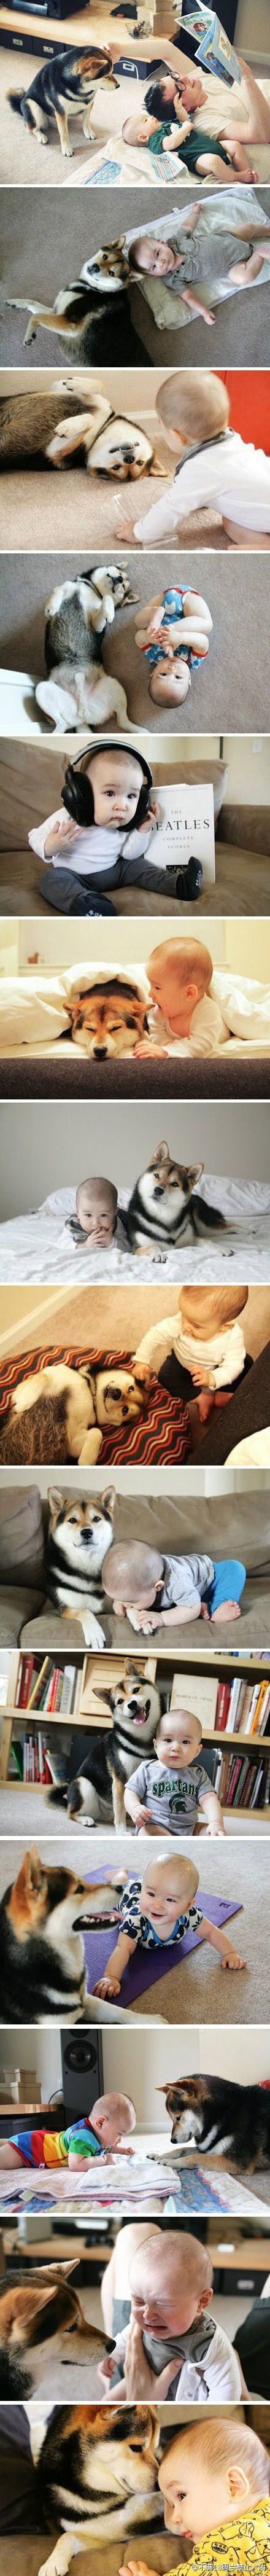 baby and dog. I'm in love.